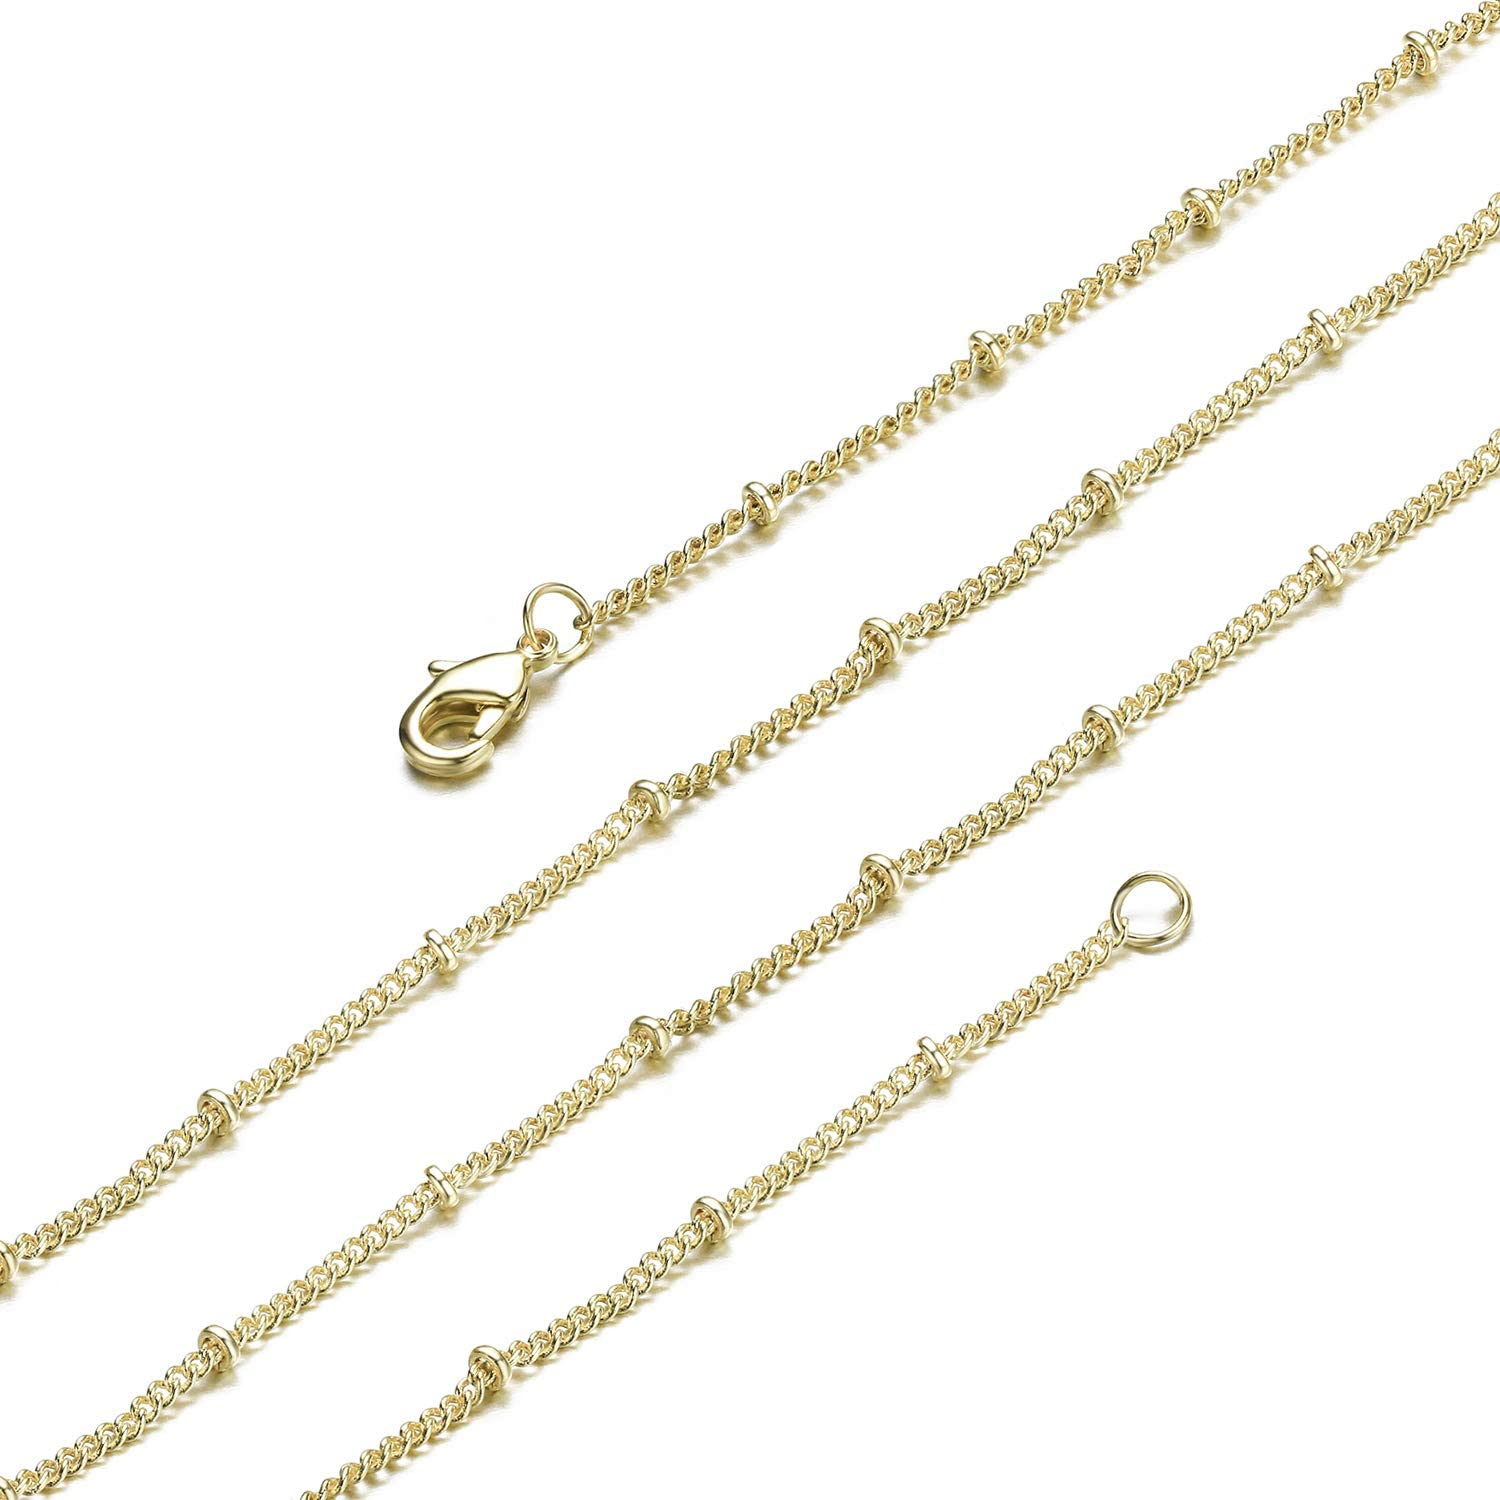 romantic finished chain brass minimalist necklace black steel chain 32 to 36 lenght, Black silver and gold chains charms necklace